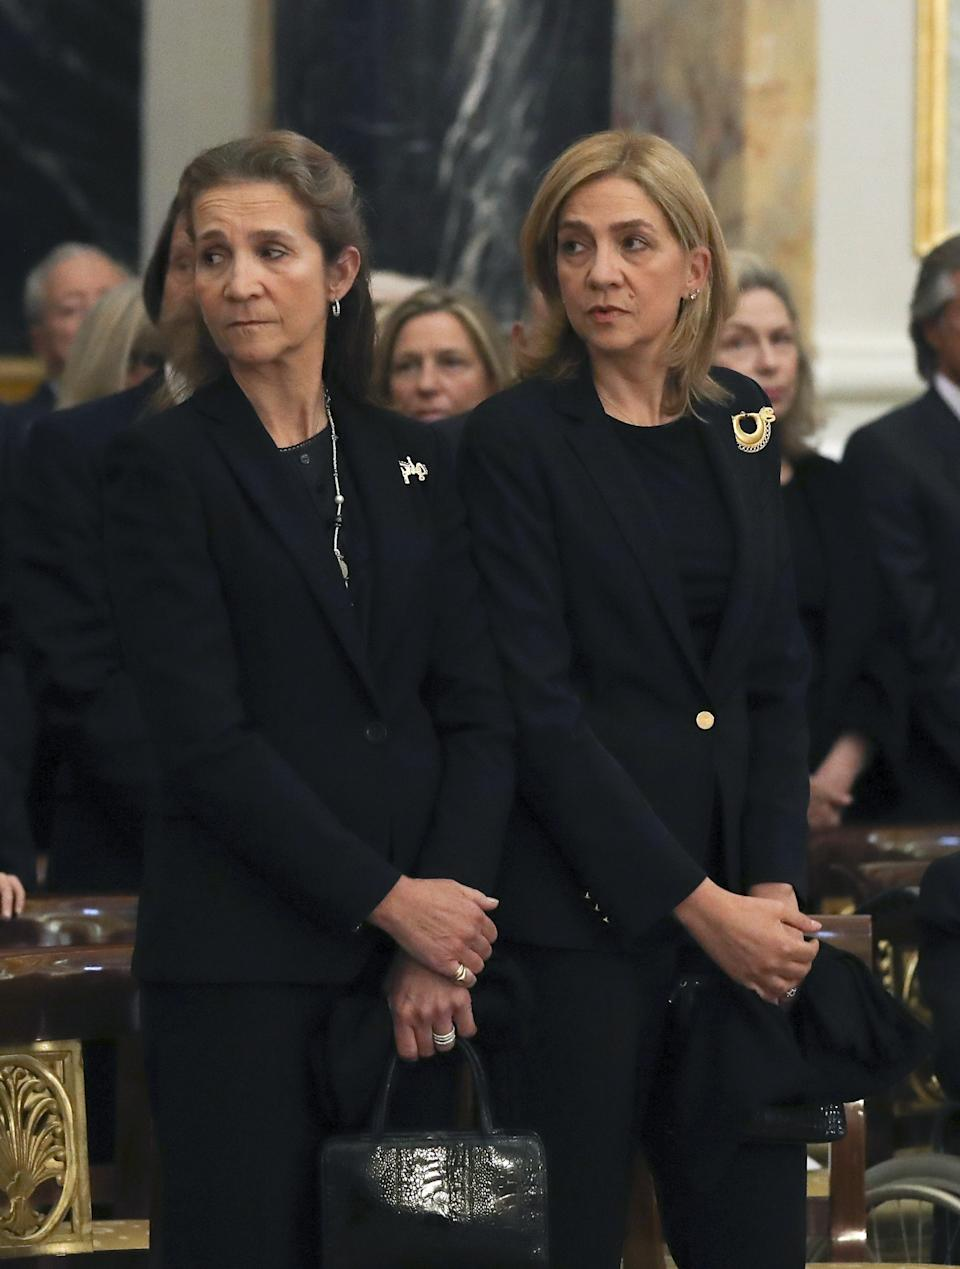 MADRID, SPAIN - MAY 11:  Princess Elena and Princess Cristina attend the funeral of the Infanta Alicia de Borbon-Parma in the chapel of the Royal Palace, on May 11, 2017 in Madrid, Spain. (Photo by Ballesteros - Pool/Getty Images)